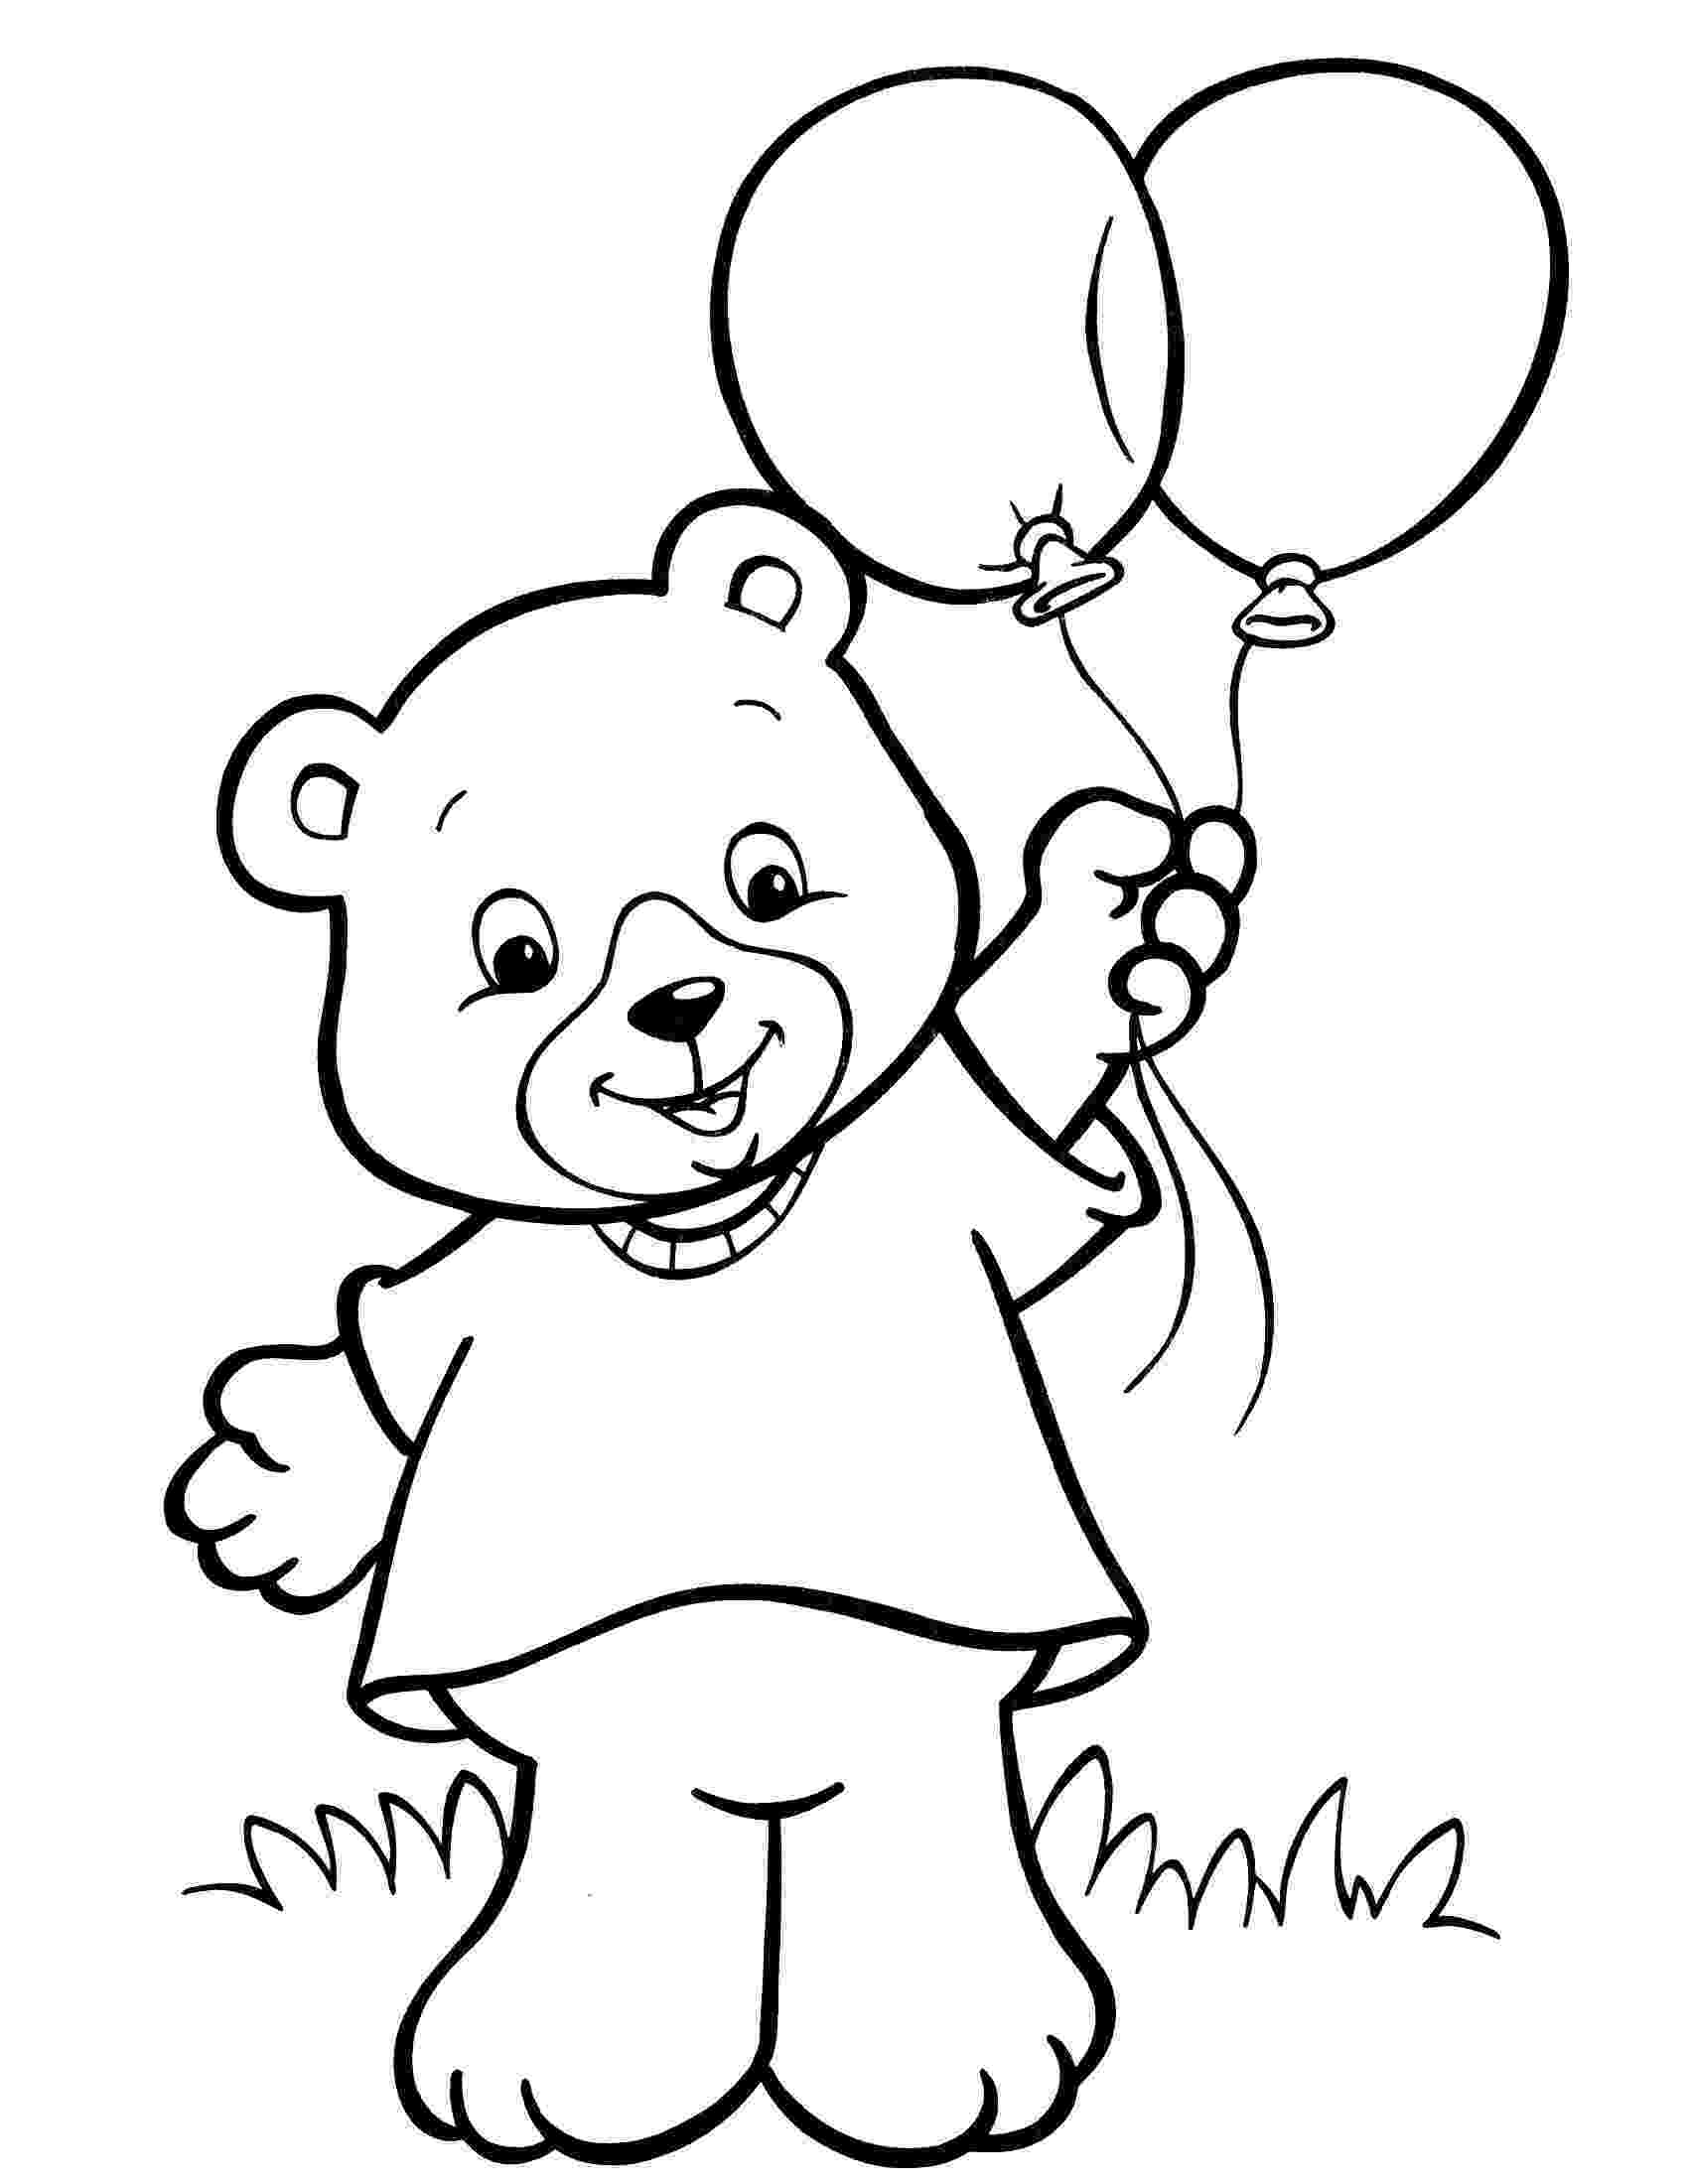 printable coloring pages for 9 year olds ladies coloring pages to download and print for free olds for 9 pages printable coloring year